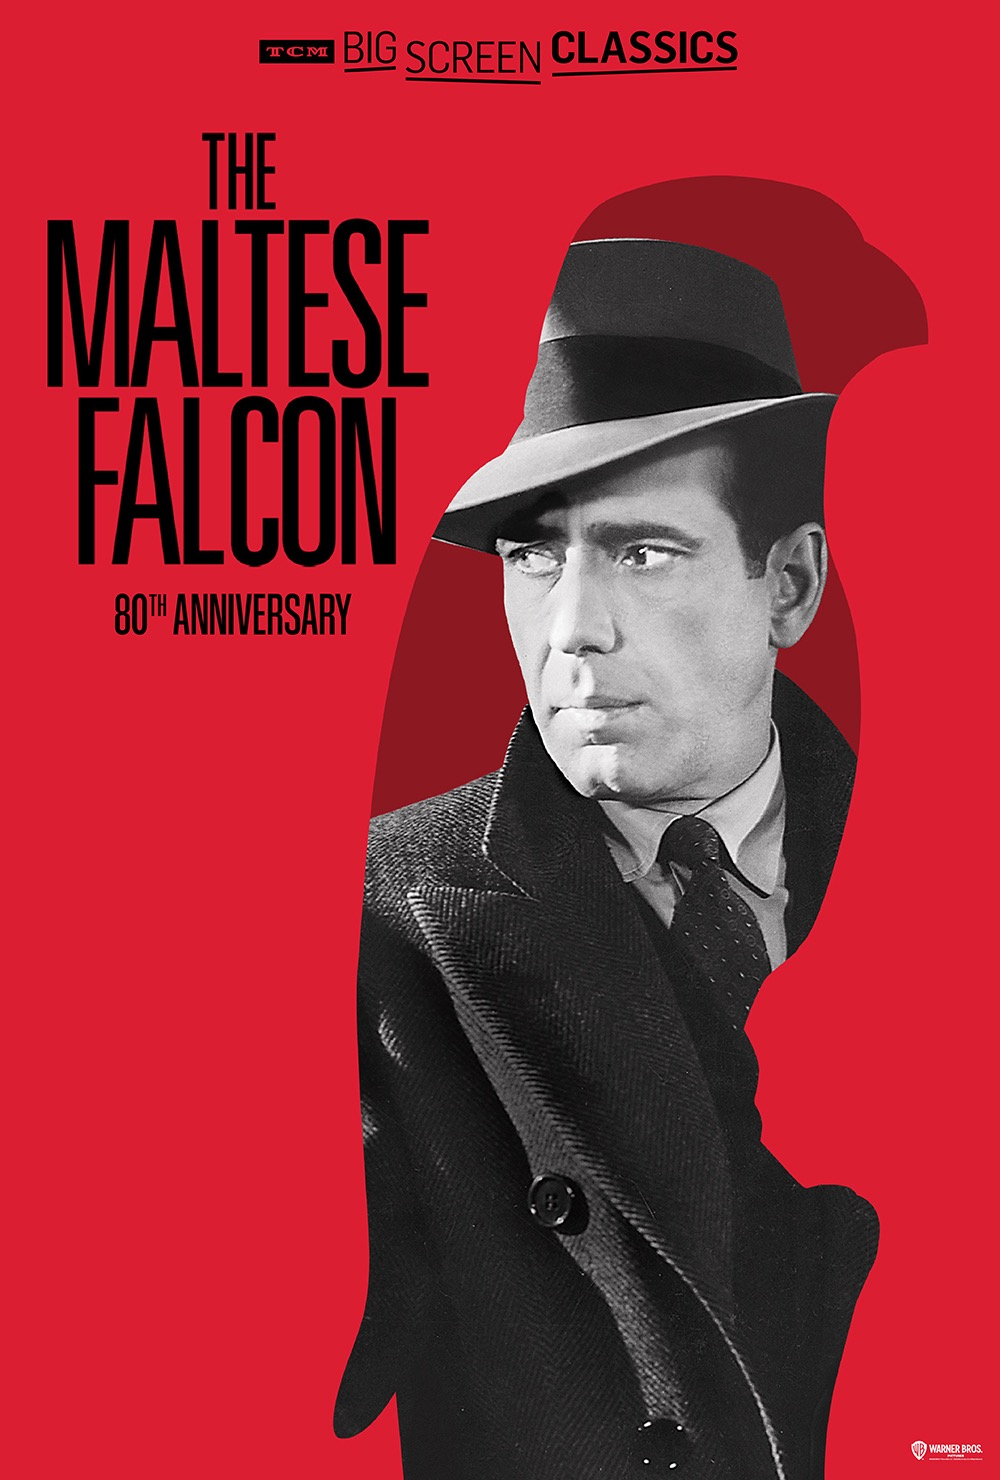 The Maltese Falcon 80th Anniversary